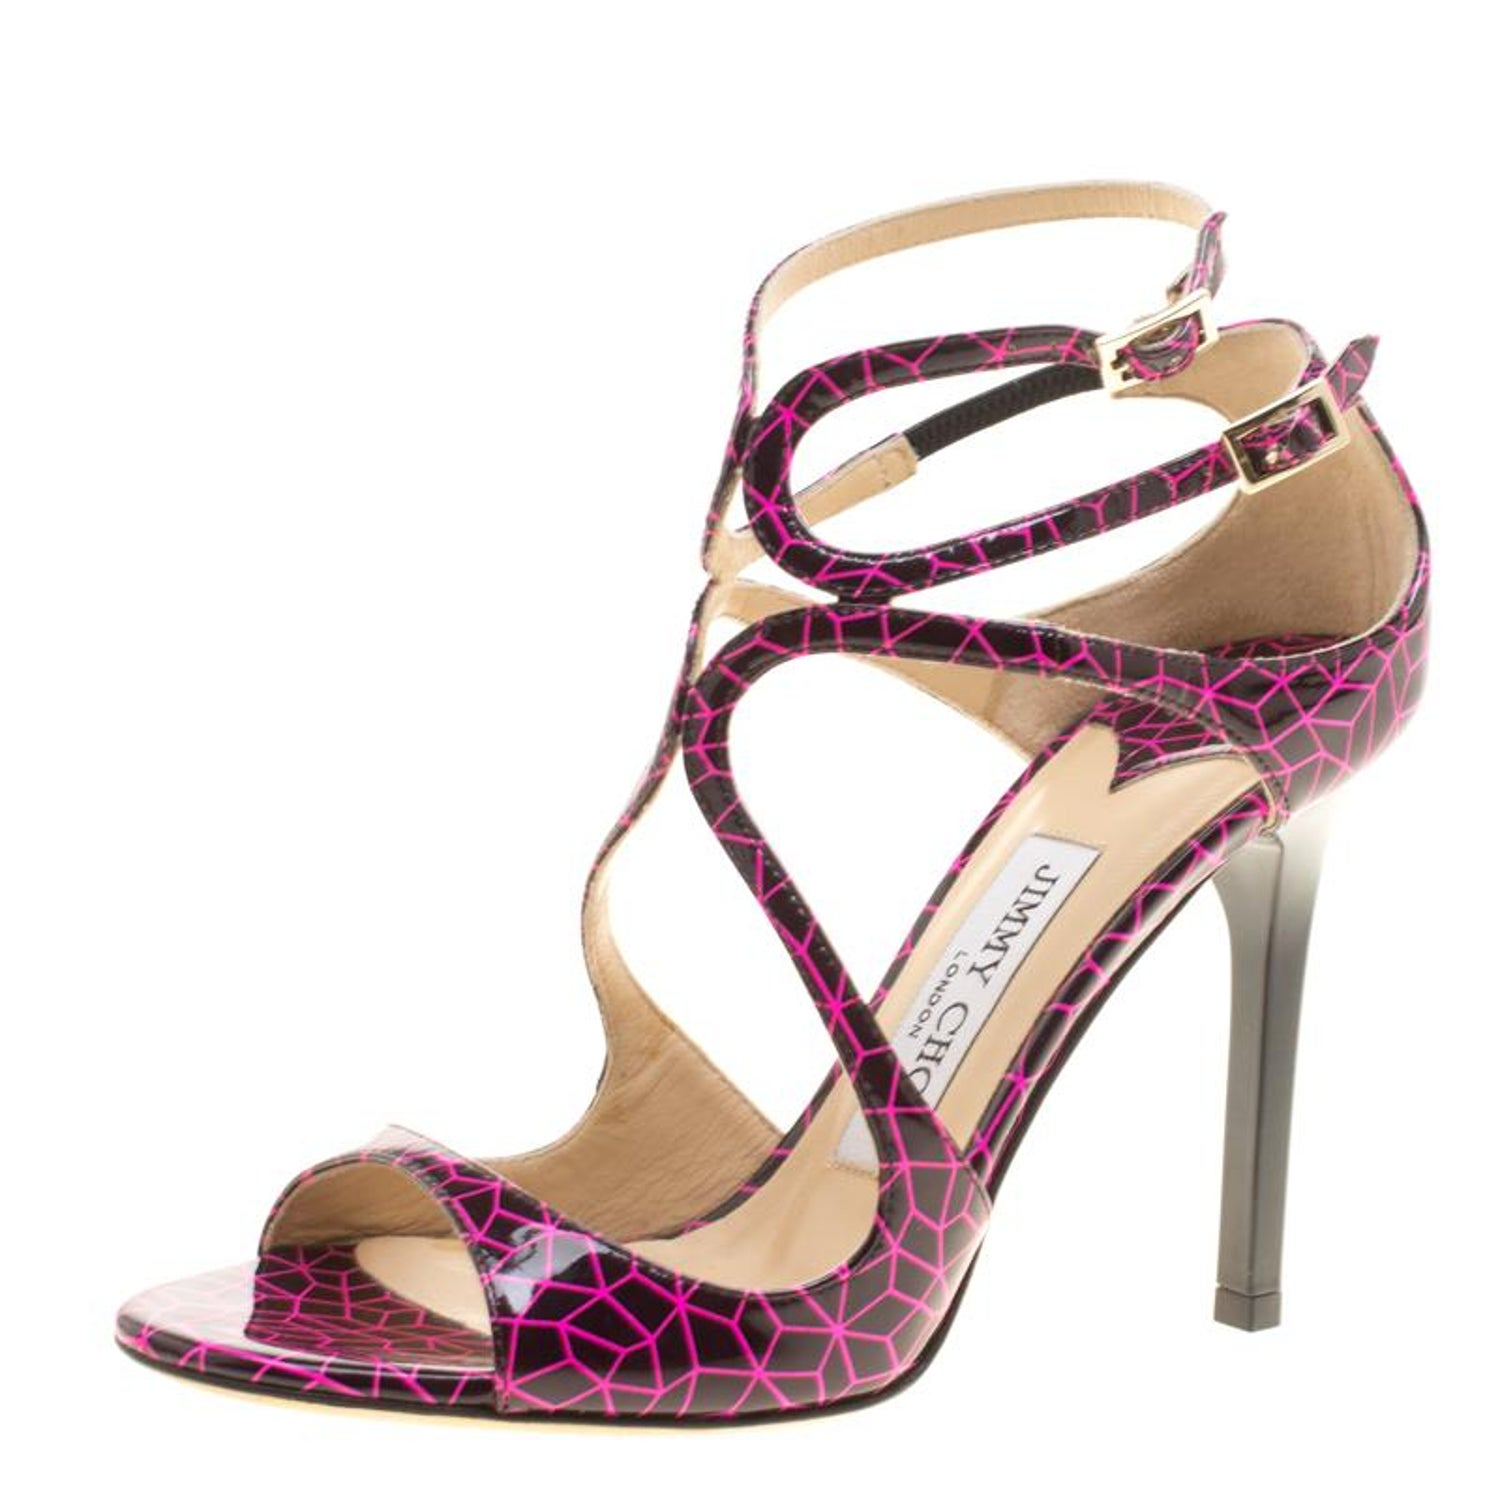 7495abb0021 Jimmy Choo Pink and Black Print Patent Lance Strappy Sandals Size 35.5 For  Sale at 1stdibs